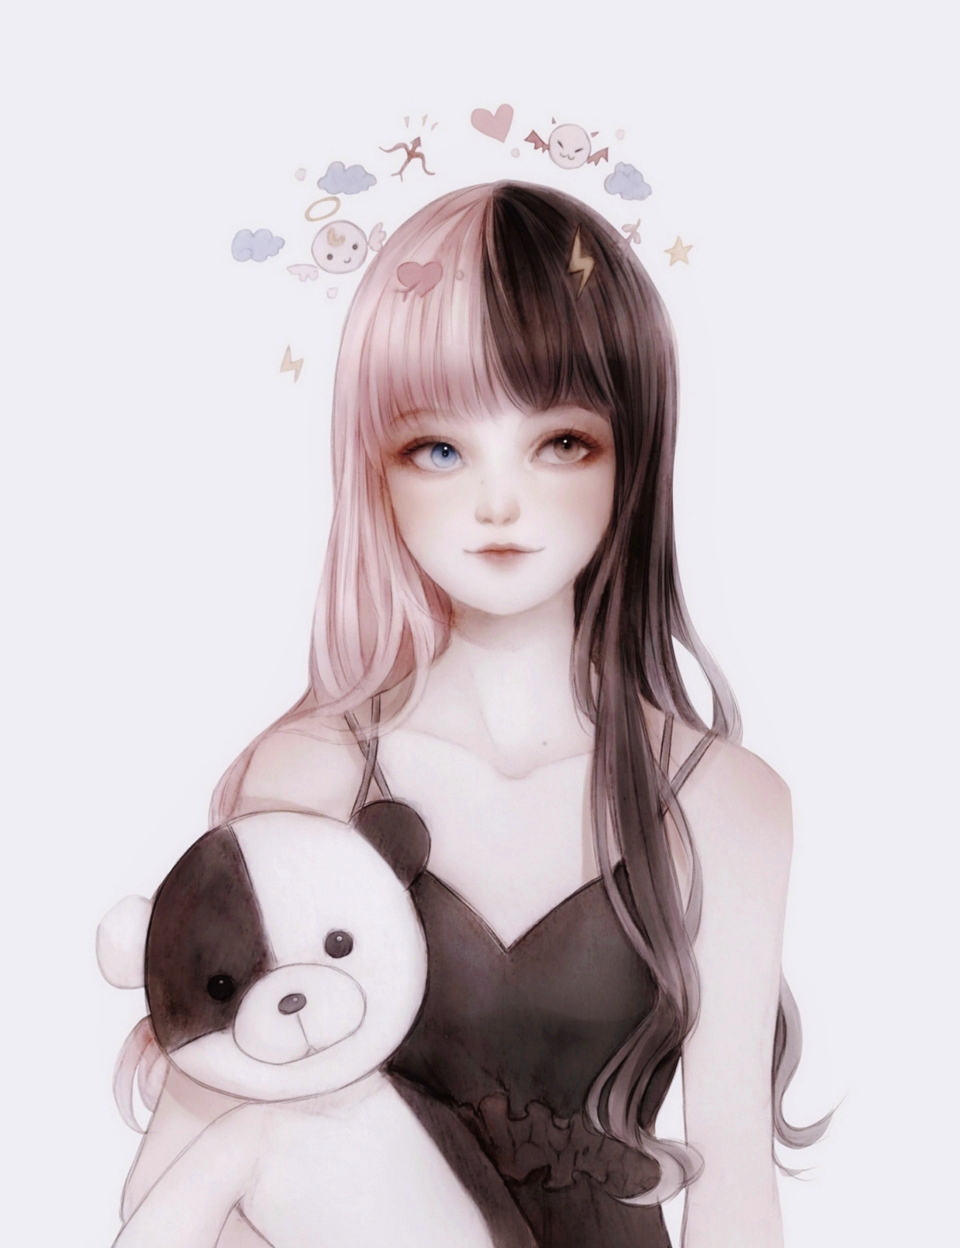 1girl bangs bare_shoulders black_hair blue_eyes blunt_bangs brown_eyes closed_mouth collarbone emoji frills heart heterochromia highres lightning_bolt long_hair looking_away multicolored_hair multiple_straps original pink_hair simple_background sleeveless smile solo spaghetti_strap star_(symbol) stuffed_animal stuffed_toy symbol_commentary teddy_bear tency traditional_media two-tone_hair upper_body watercolor_(medium)